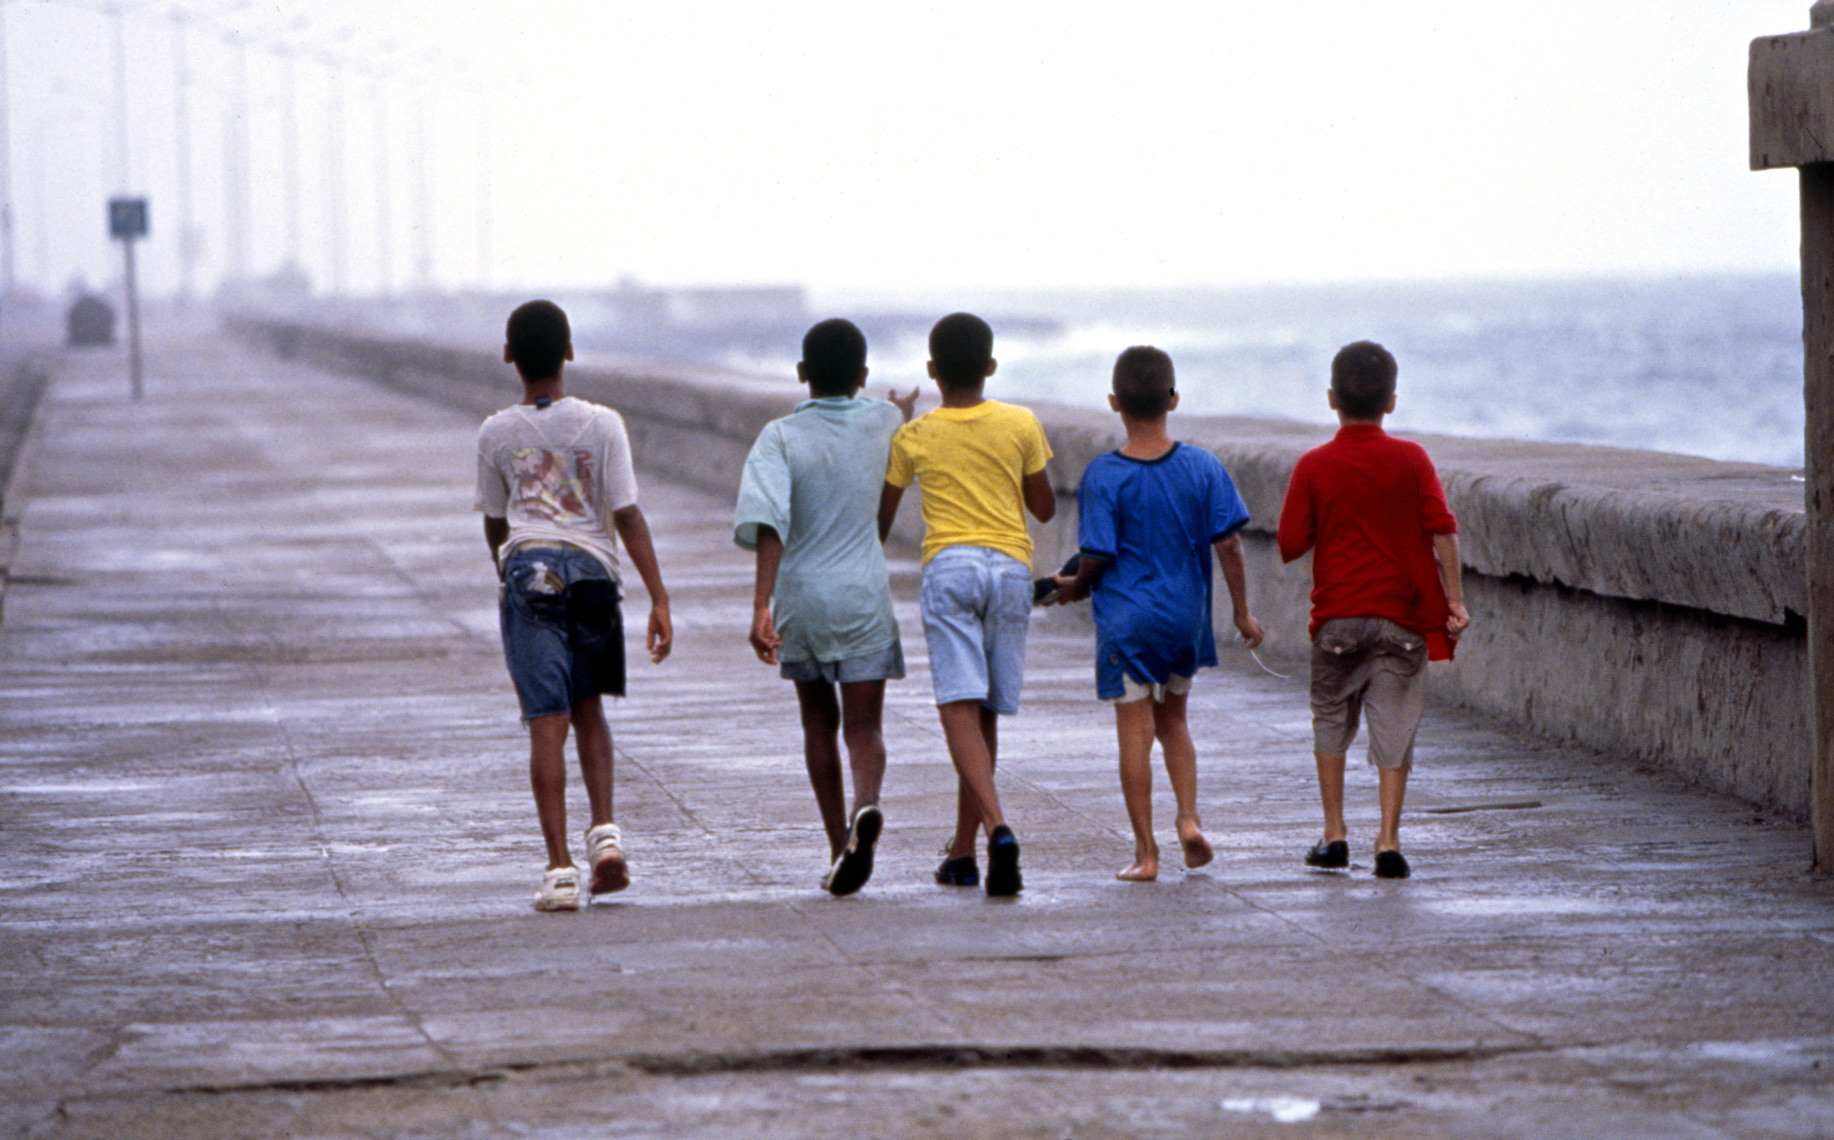 Young boys in colored shirts Cuba/Steve Mason Photography